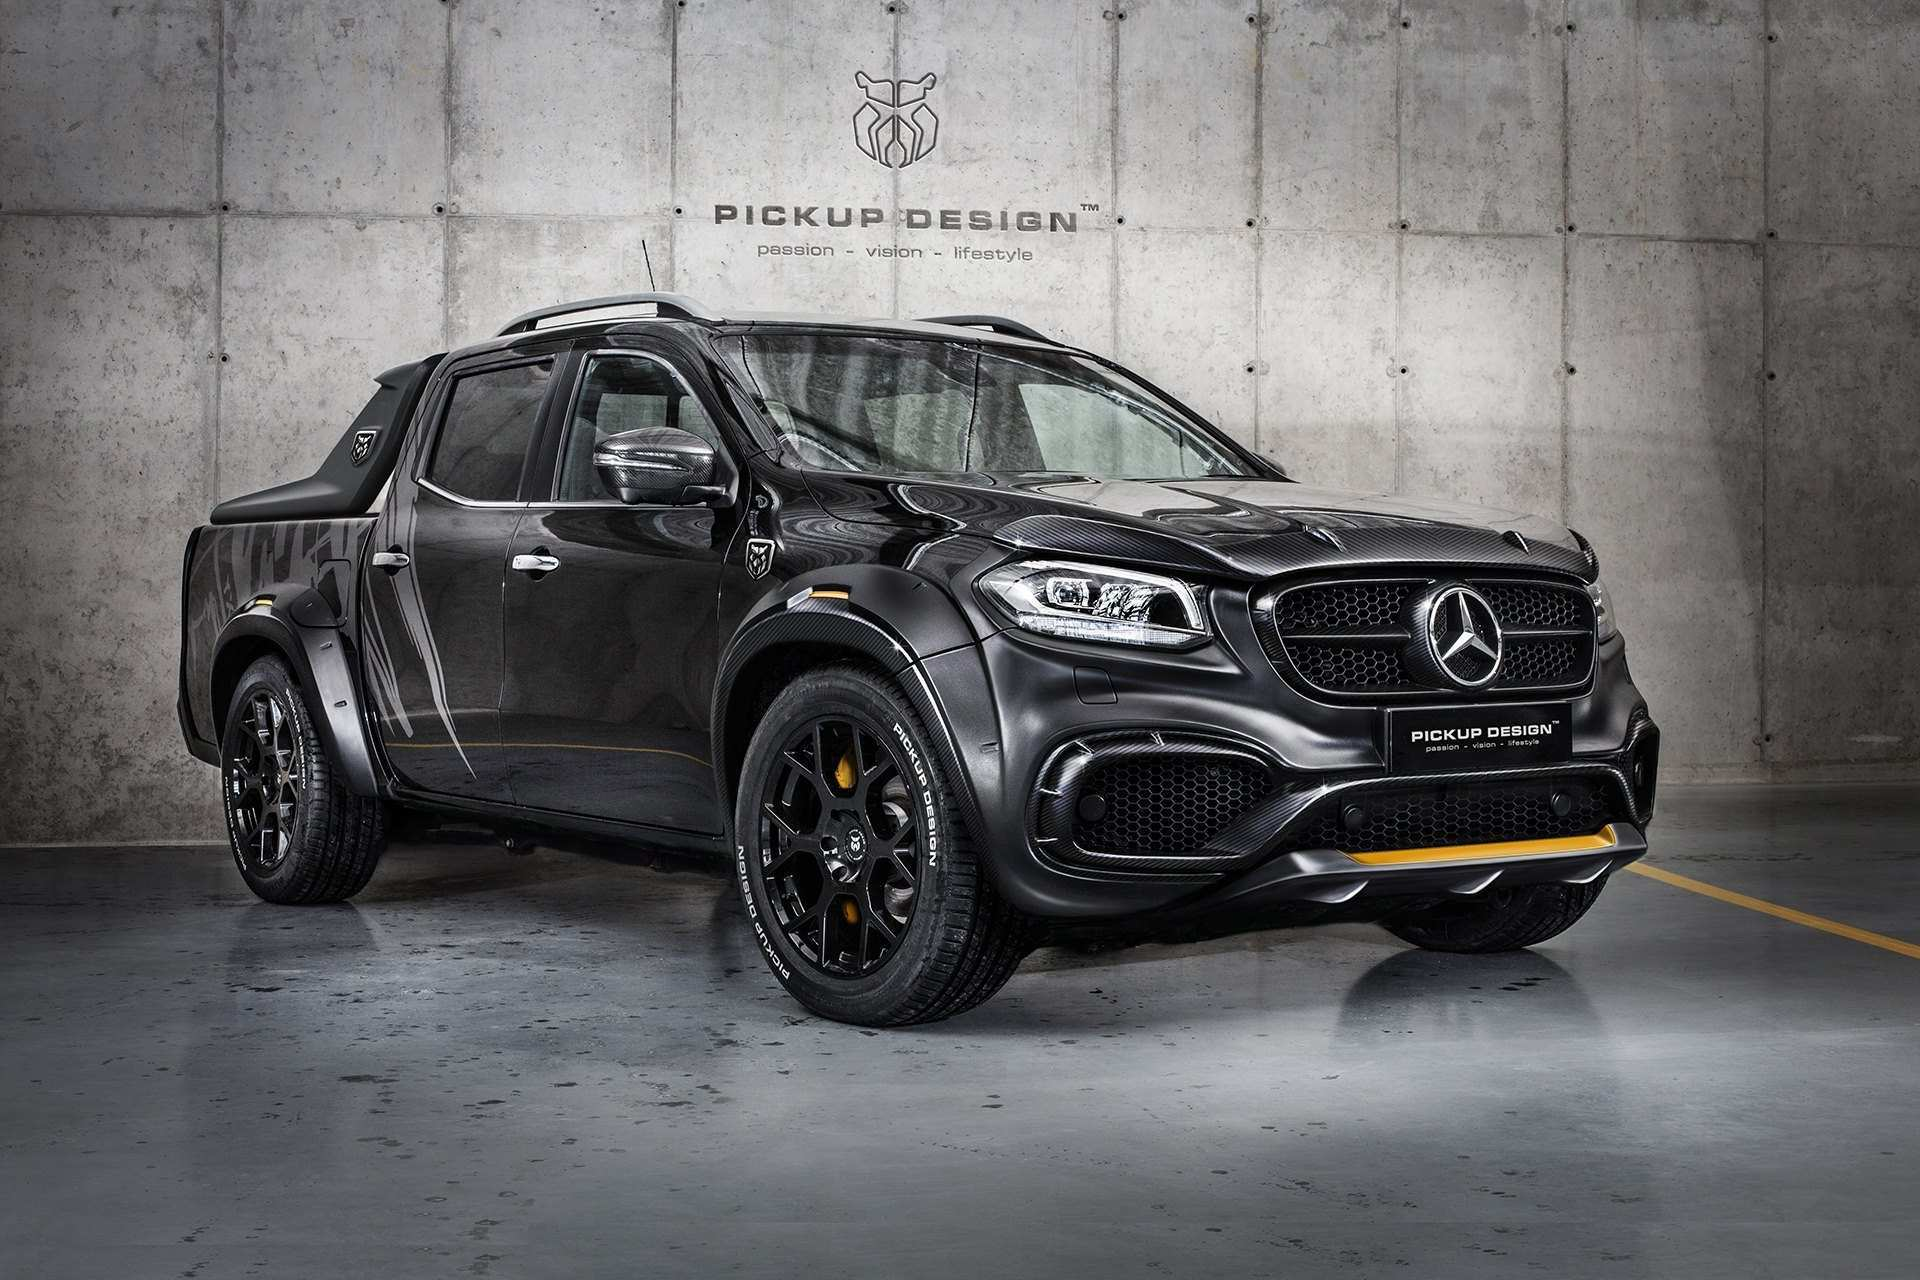 91 Gallery of New 2019 Mercedes X Class Release Date And Specs Pictures with New 2019 Mercedes X Class Release Date And Specs